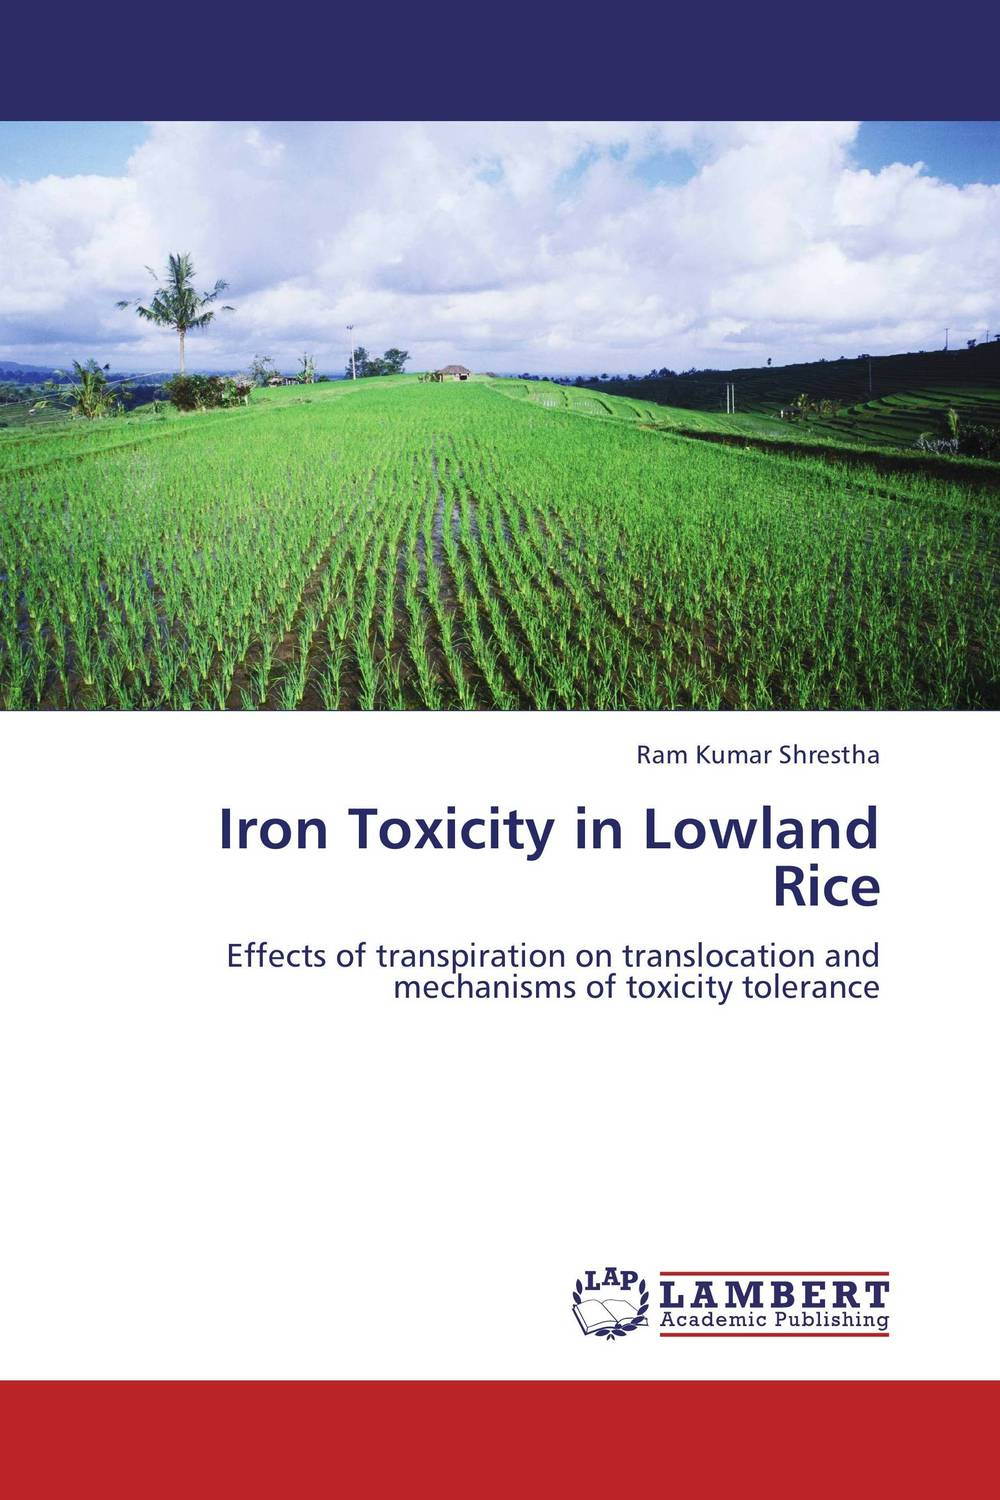 Iron Toxicity in Lowland Rice manuscript found in accra